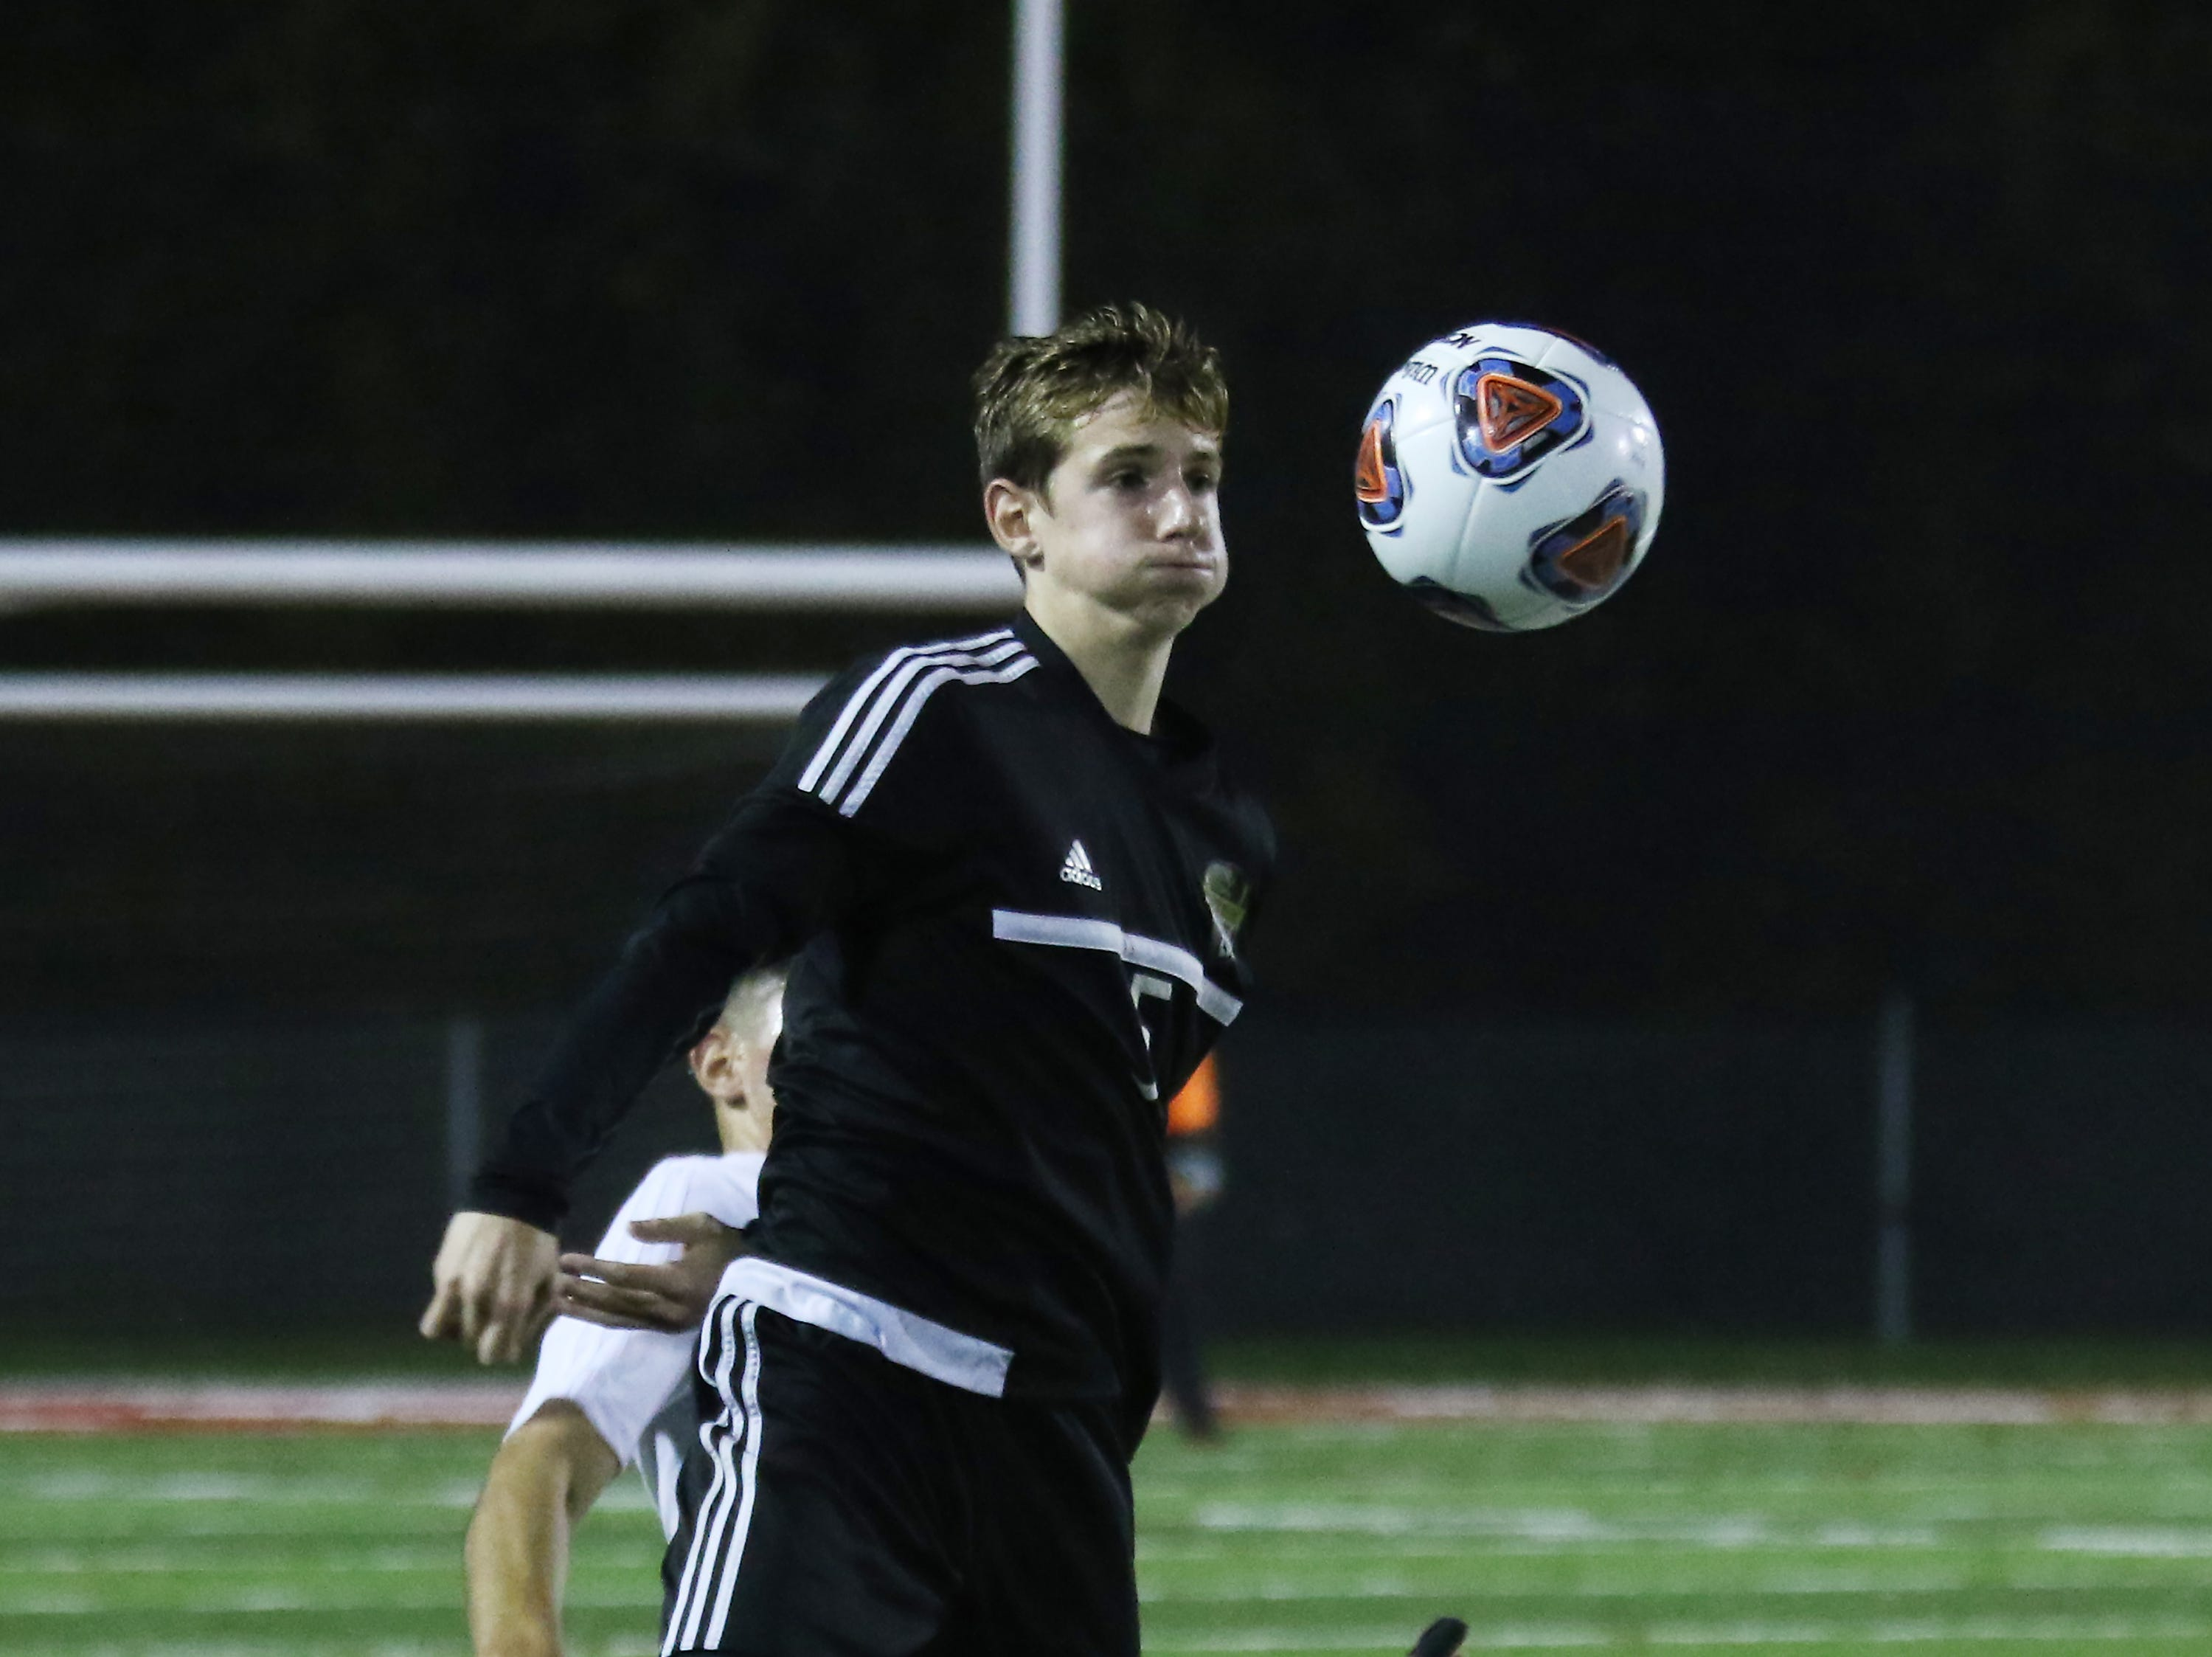 River View's Caleb Shriver controls the ball against DeSales.